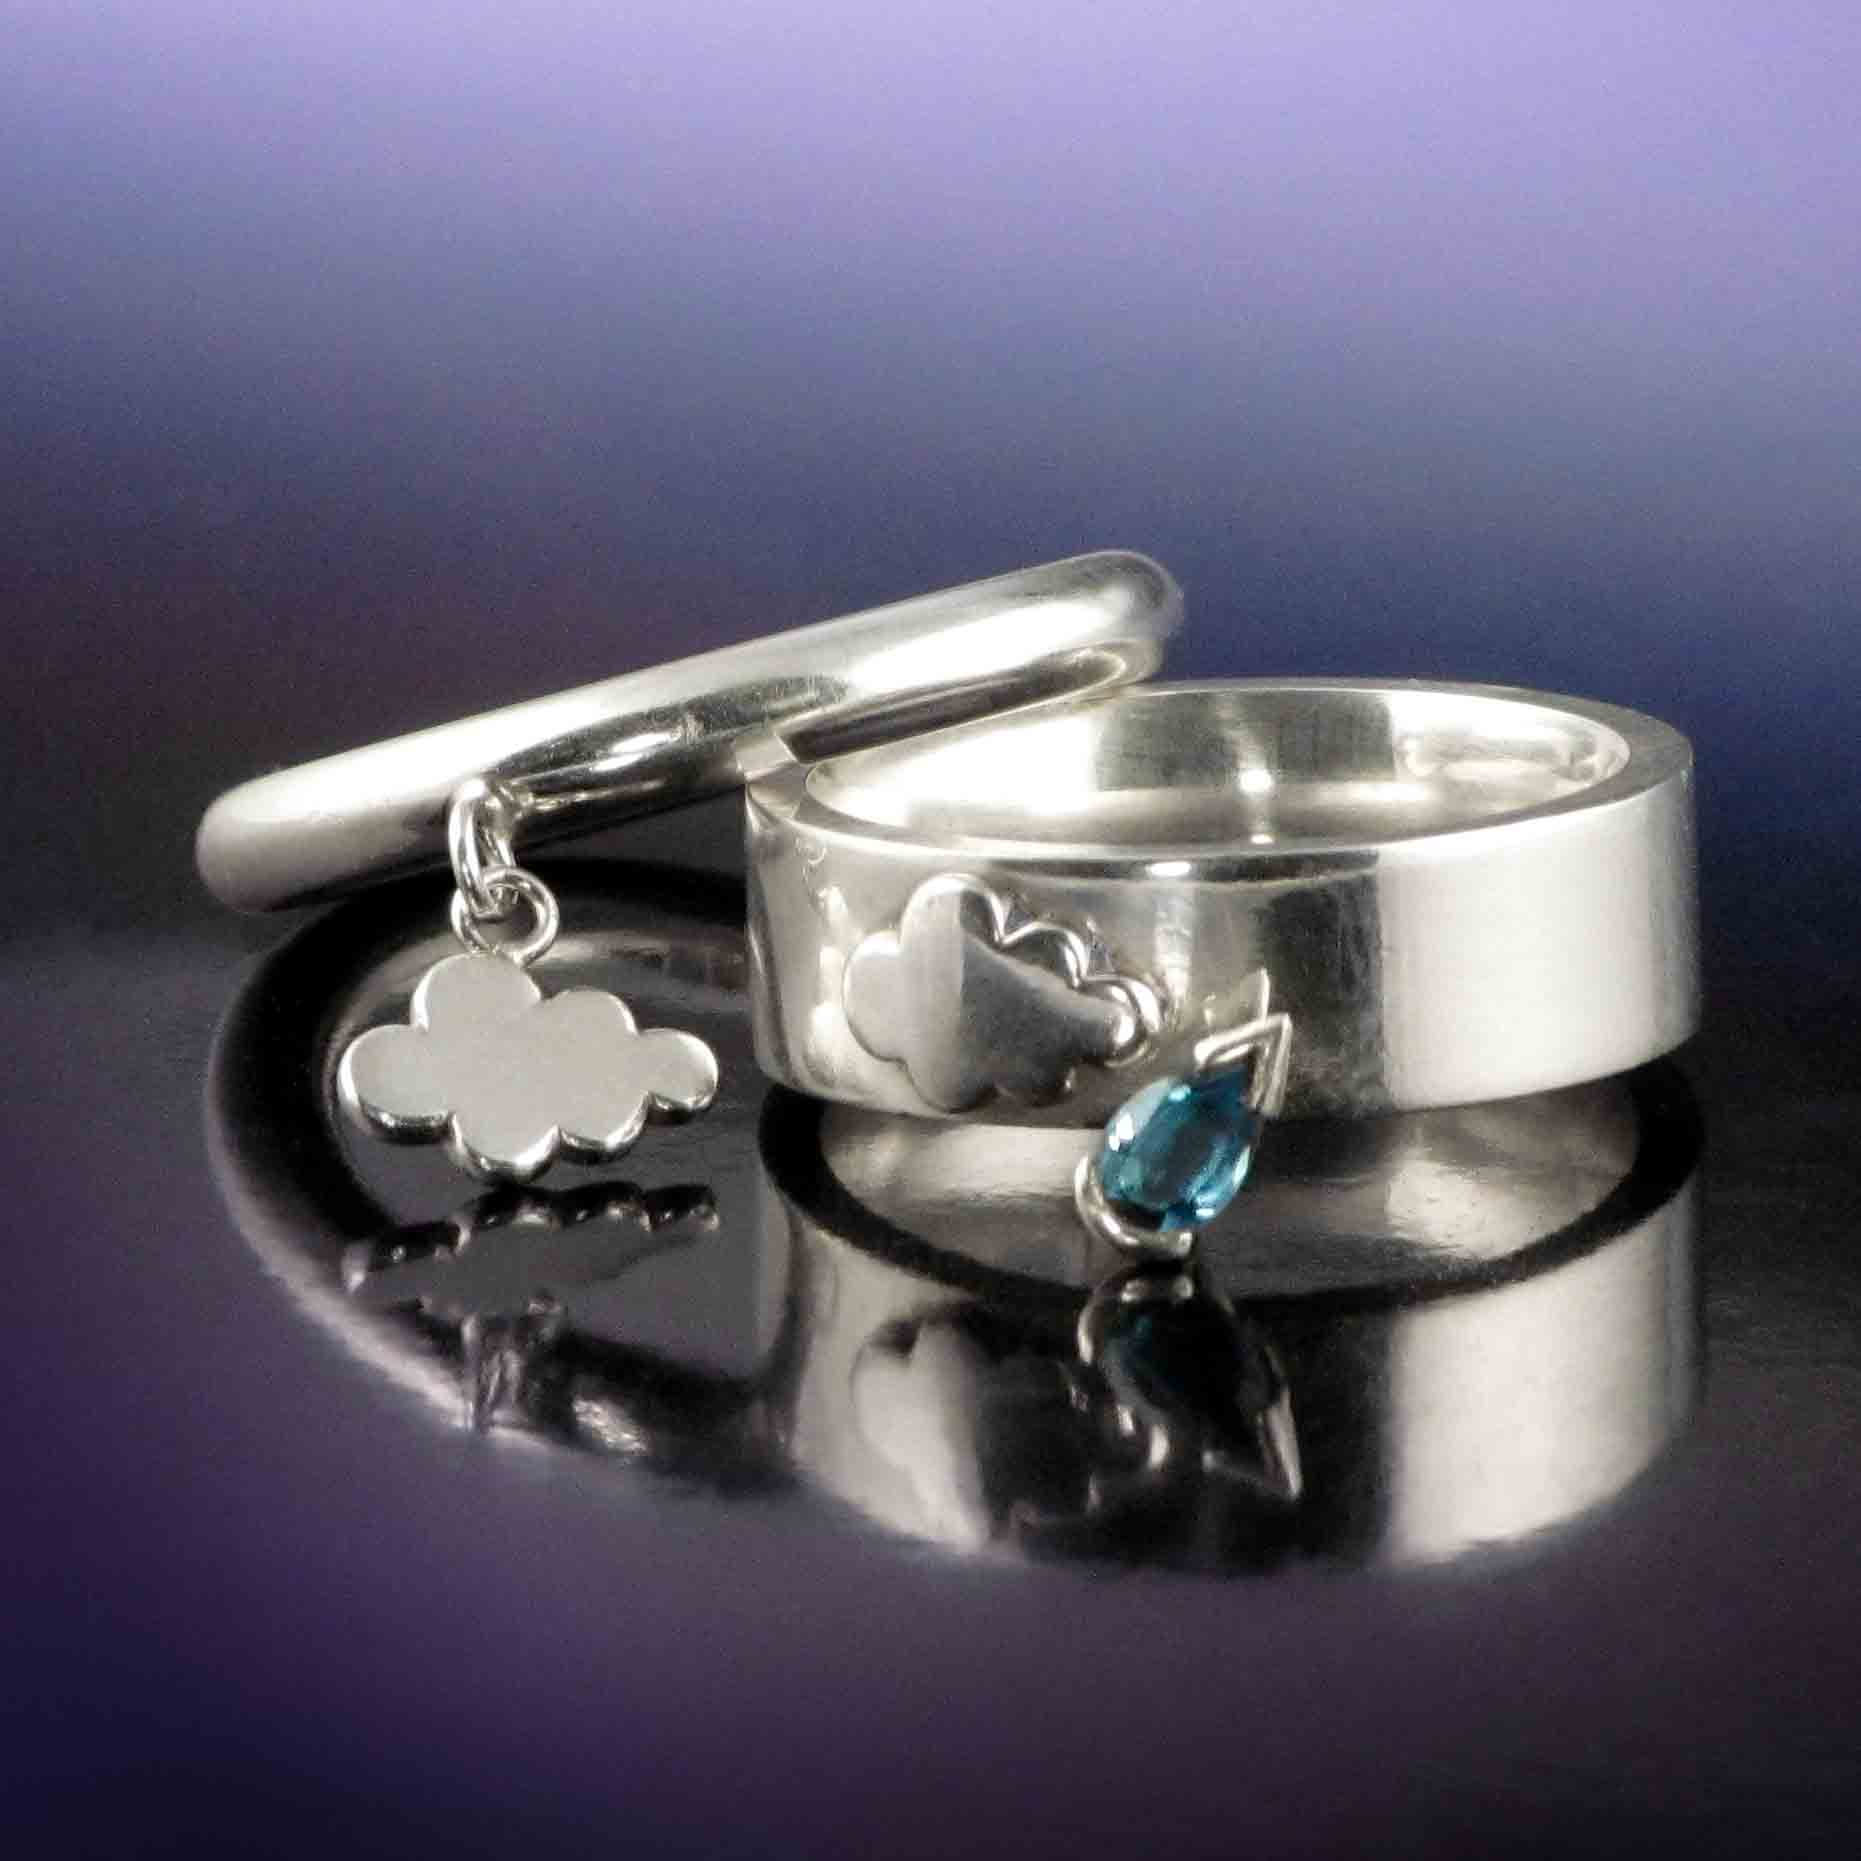 Silver cloud and rain rings